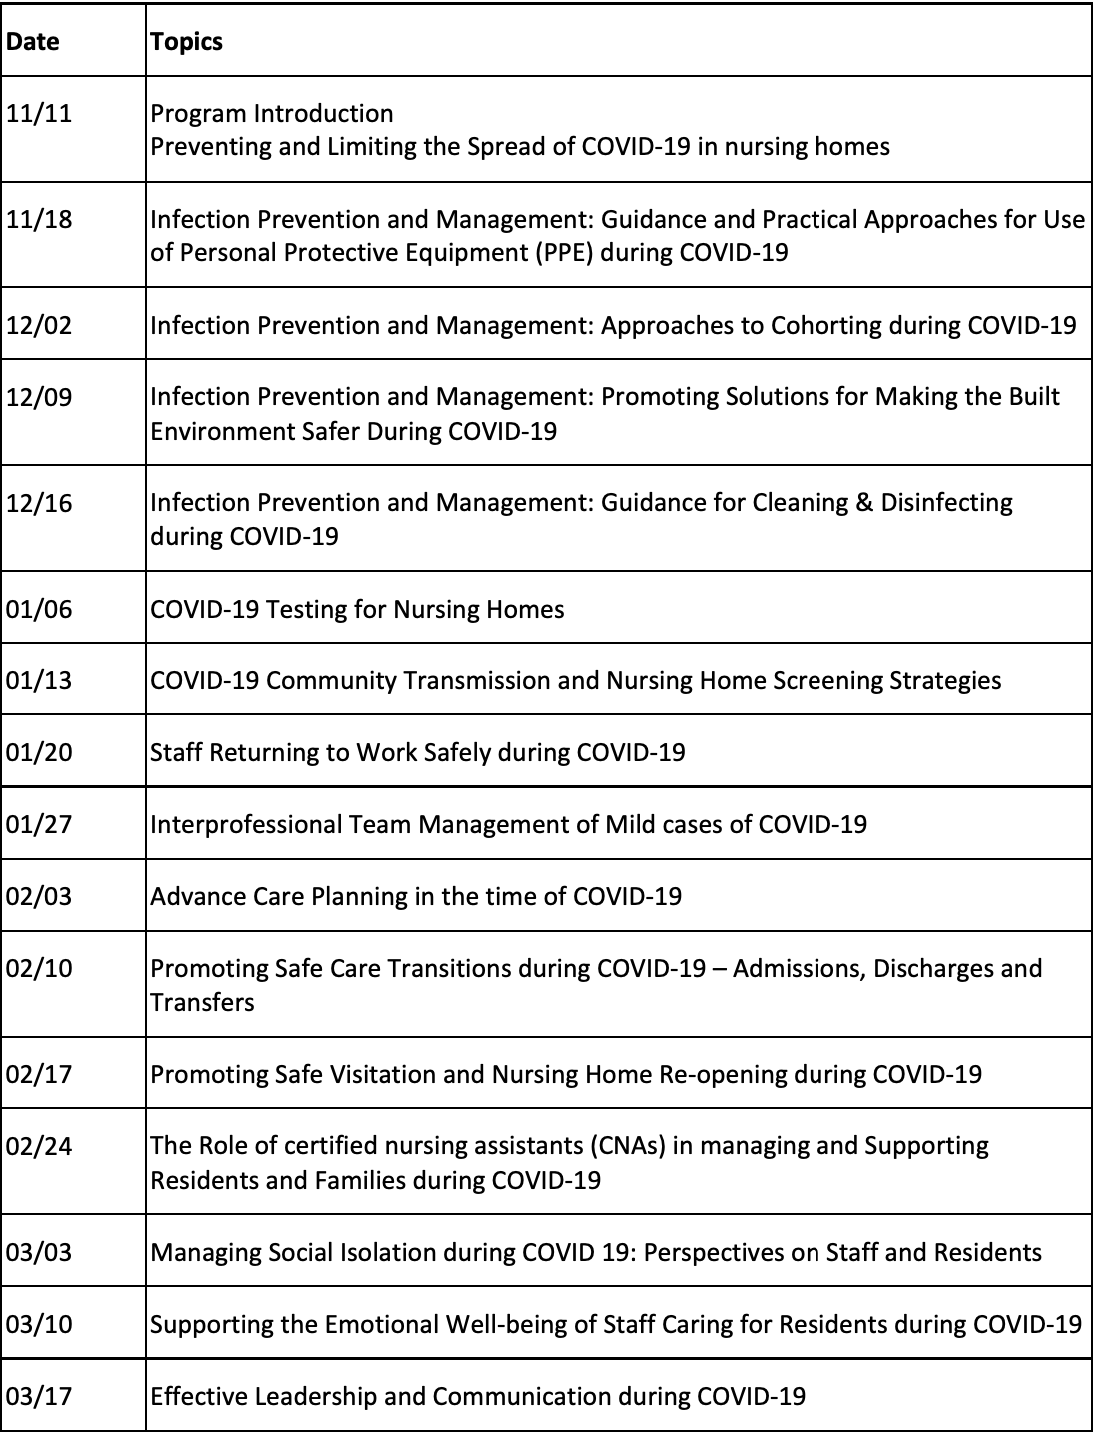 ECHO-Chicago: Nursing Home COVID-19 Action Network (Nov. 11 AM Cohort) Agenda